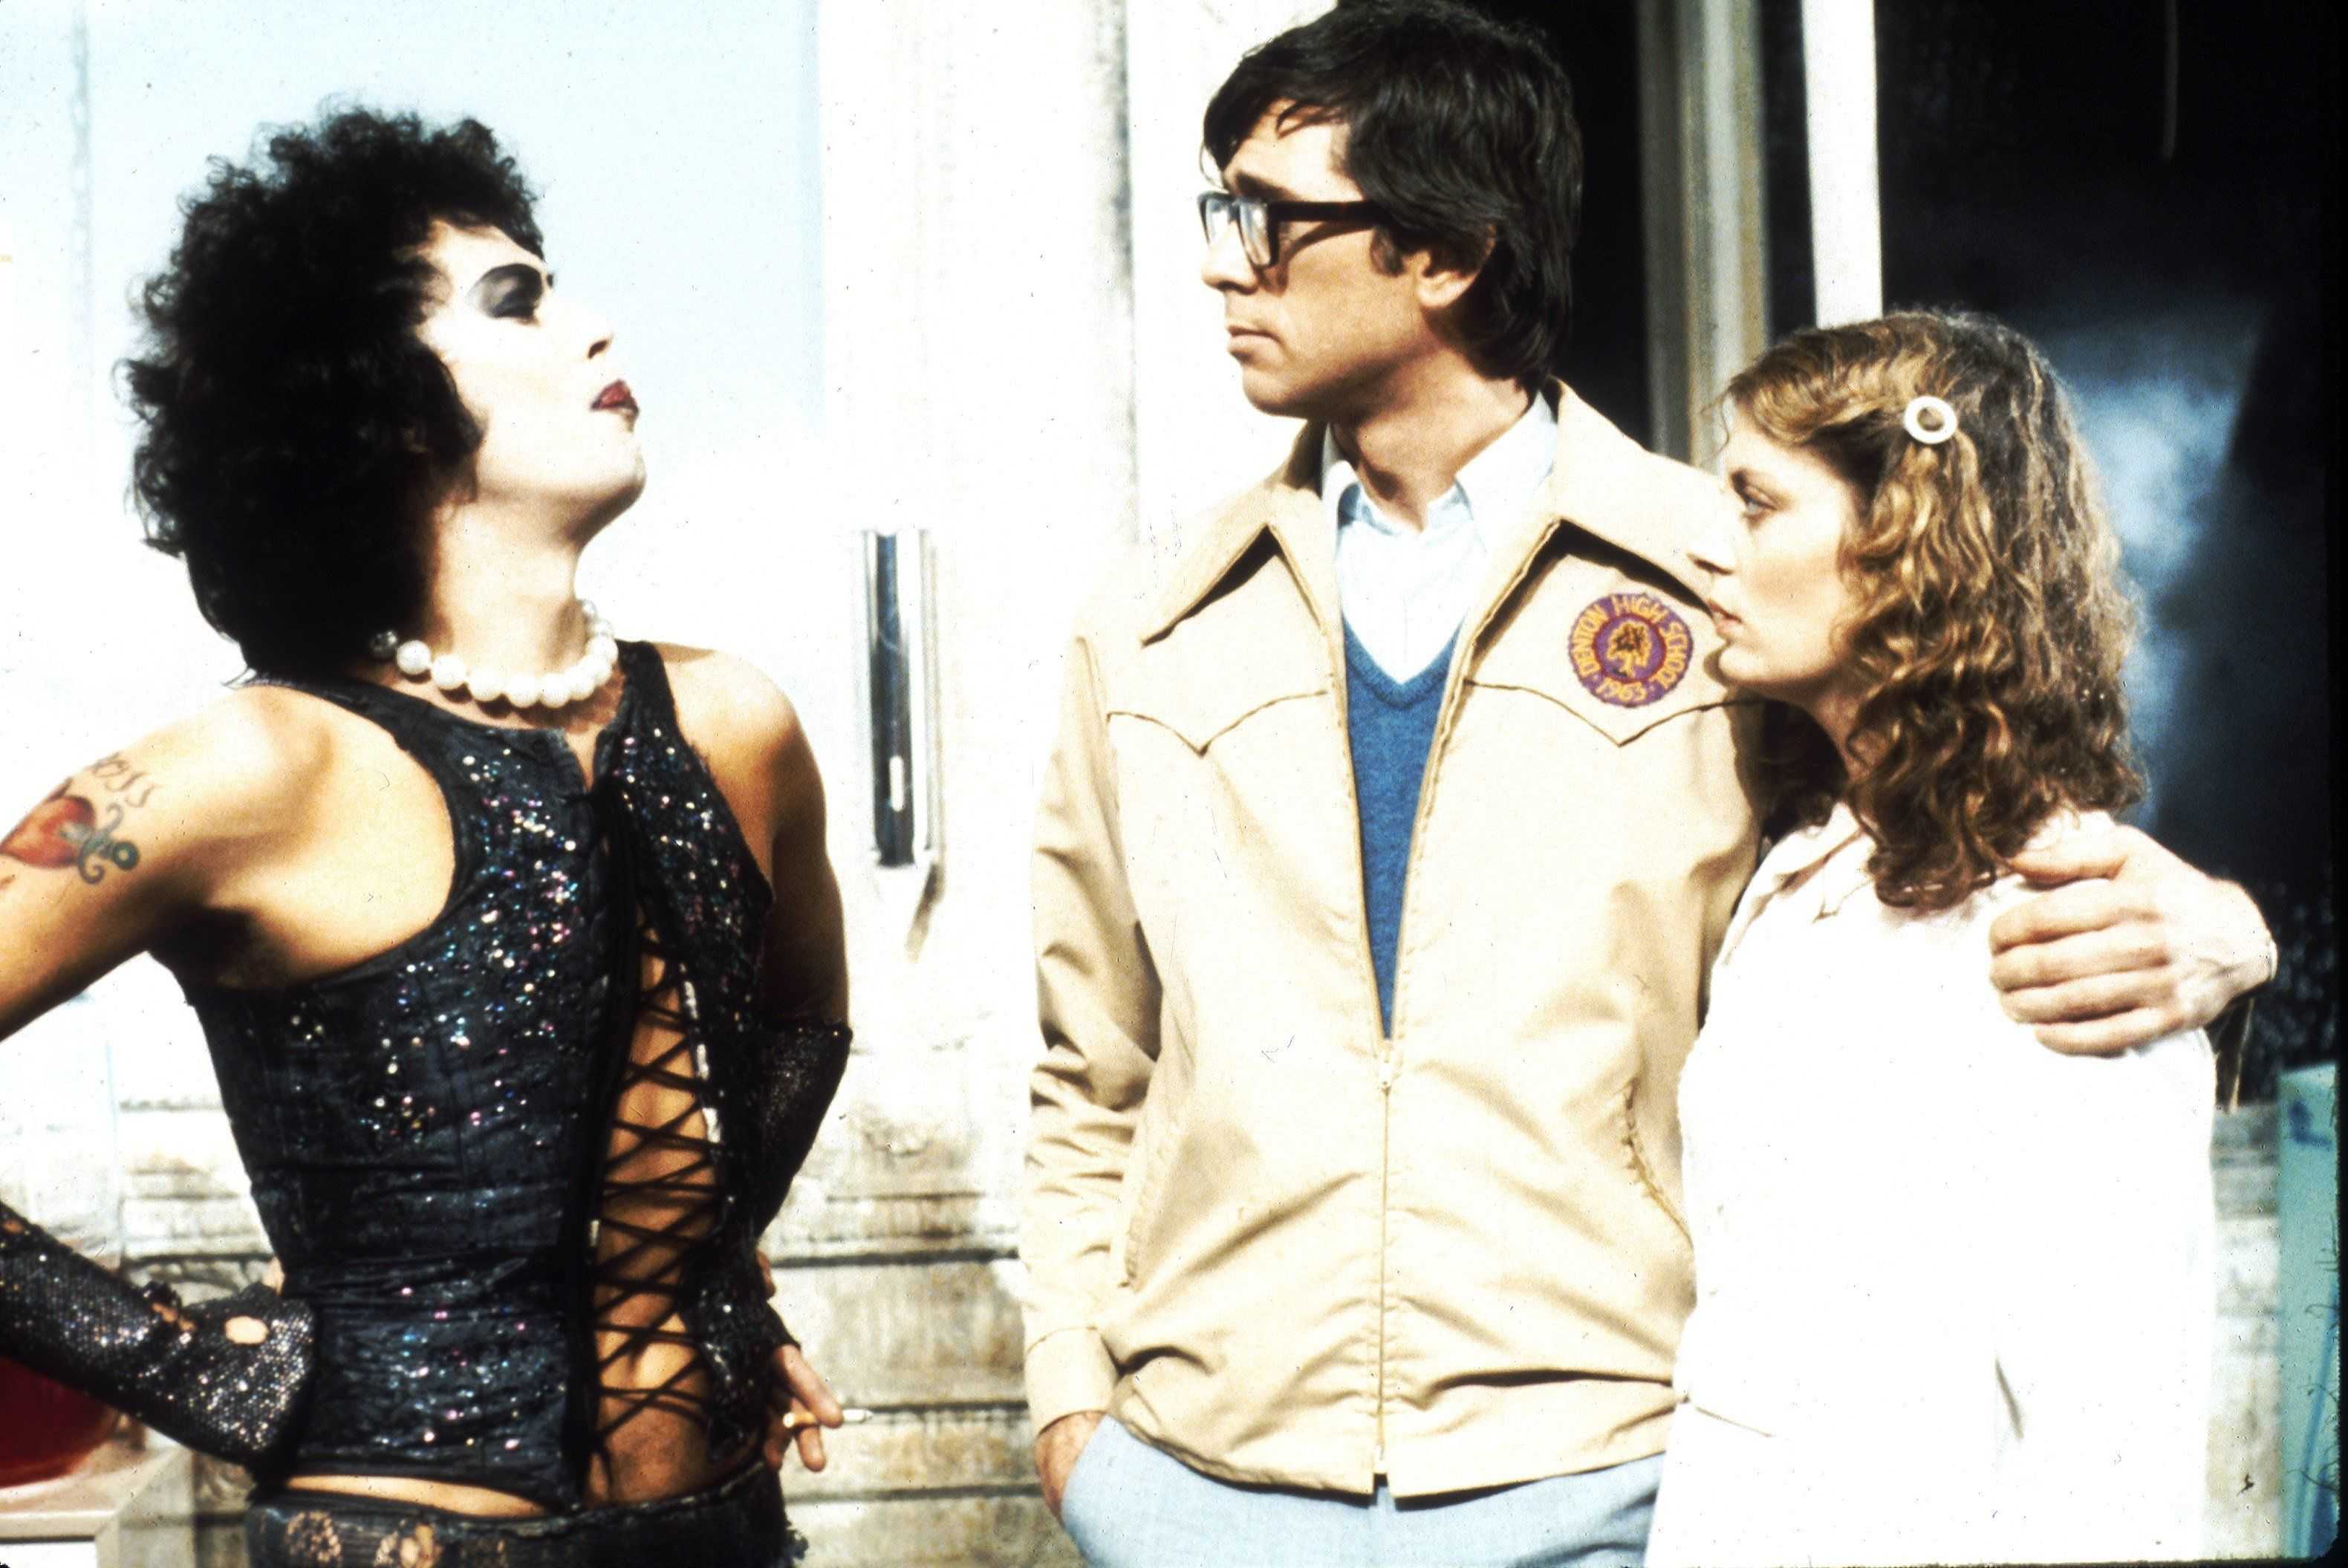 1975:  Actors Tim Curry, Barry Bostwick and Susan Sarandon  in scene from movie 'The Rocky Horror Picture Show' directed by Jim Sharman.   (Photo by Michael Ochs Archives/Getty Images)